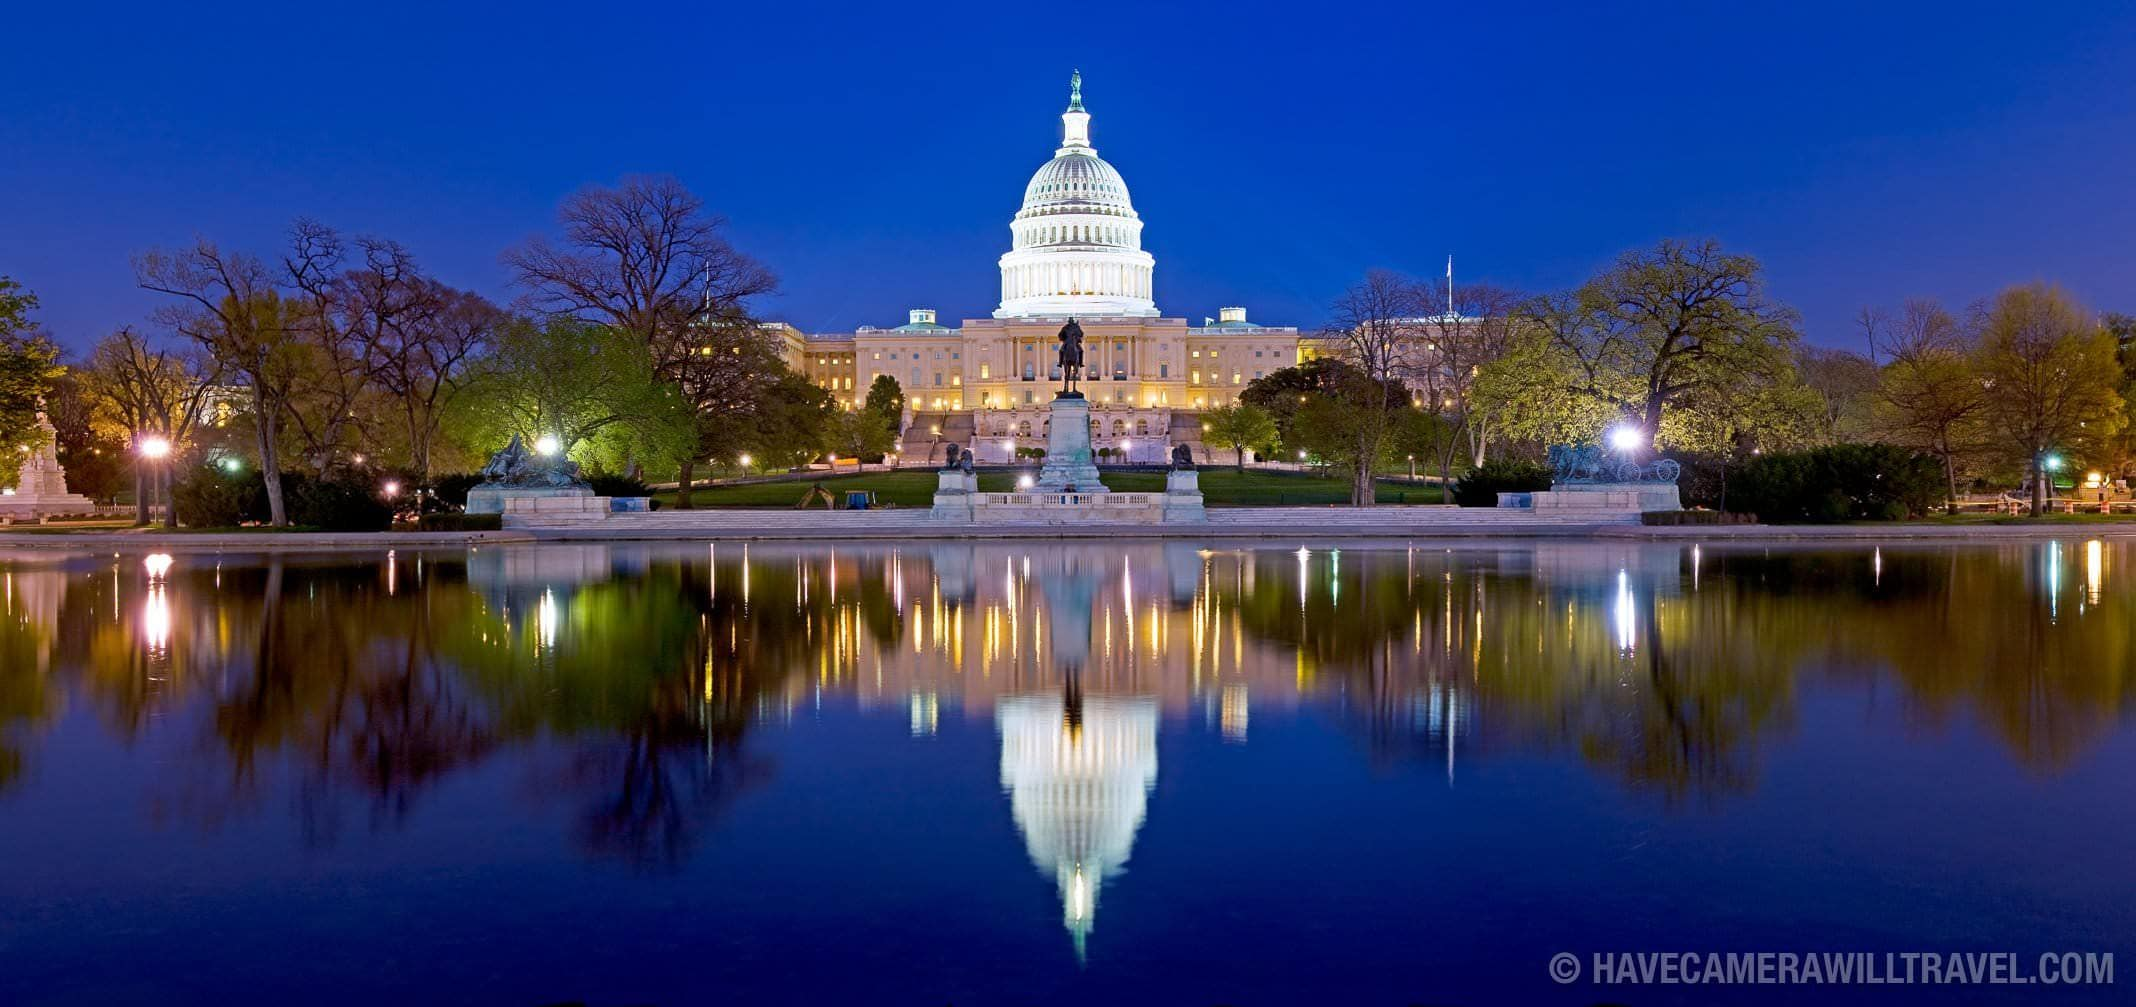 United States Capitol building with reflection on water